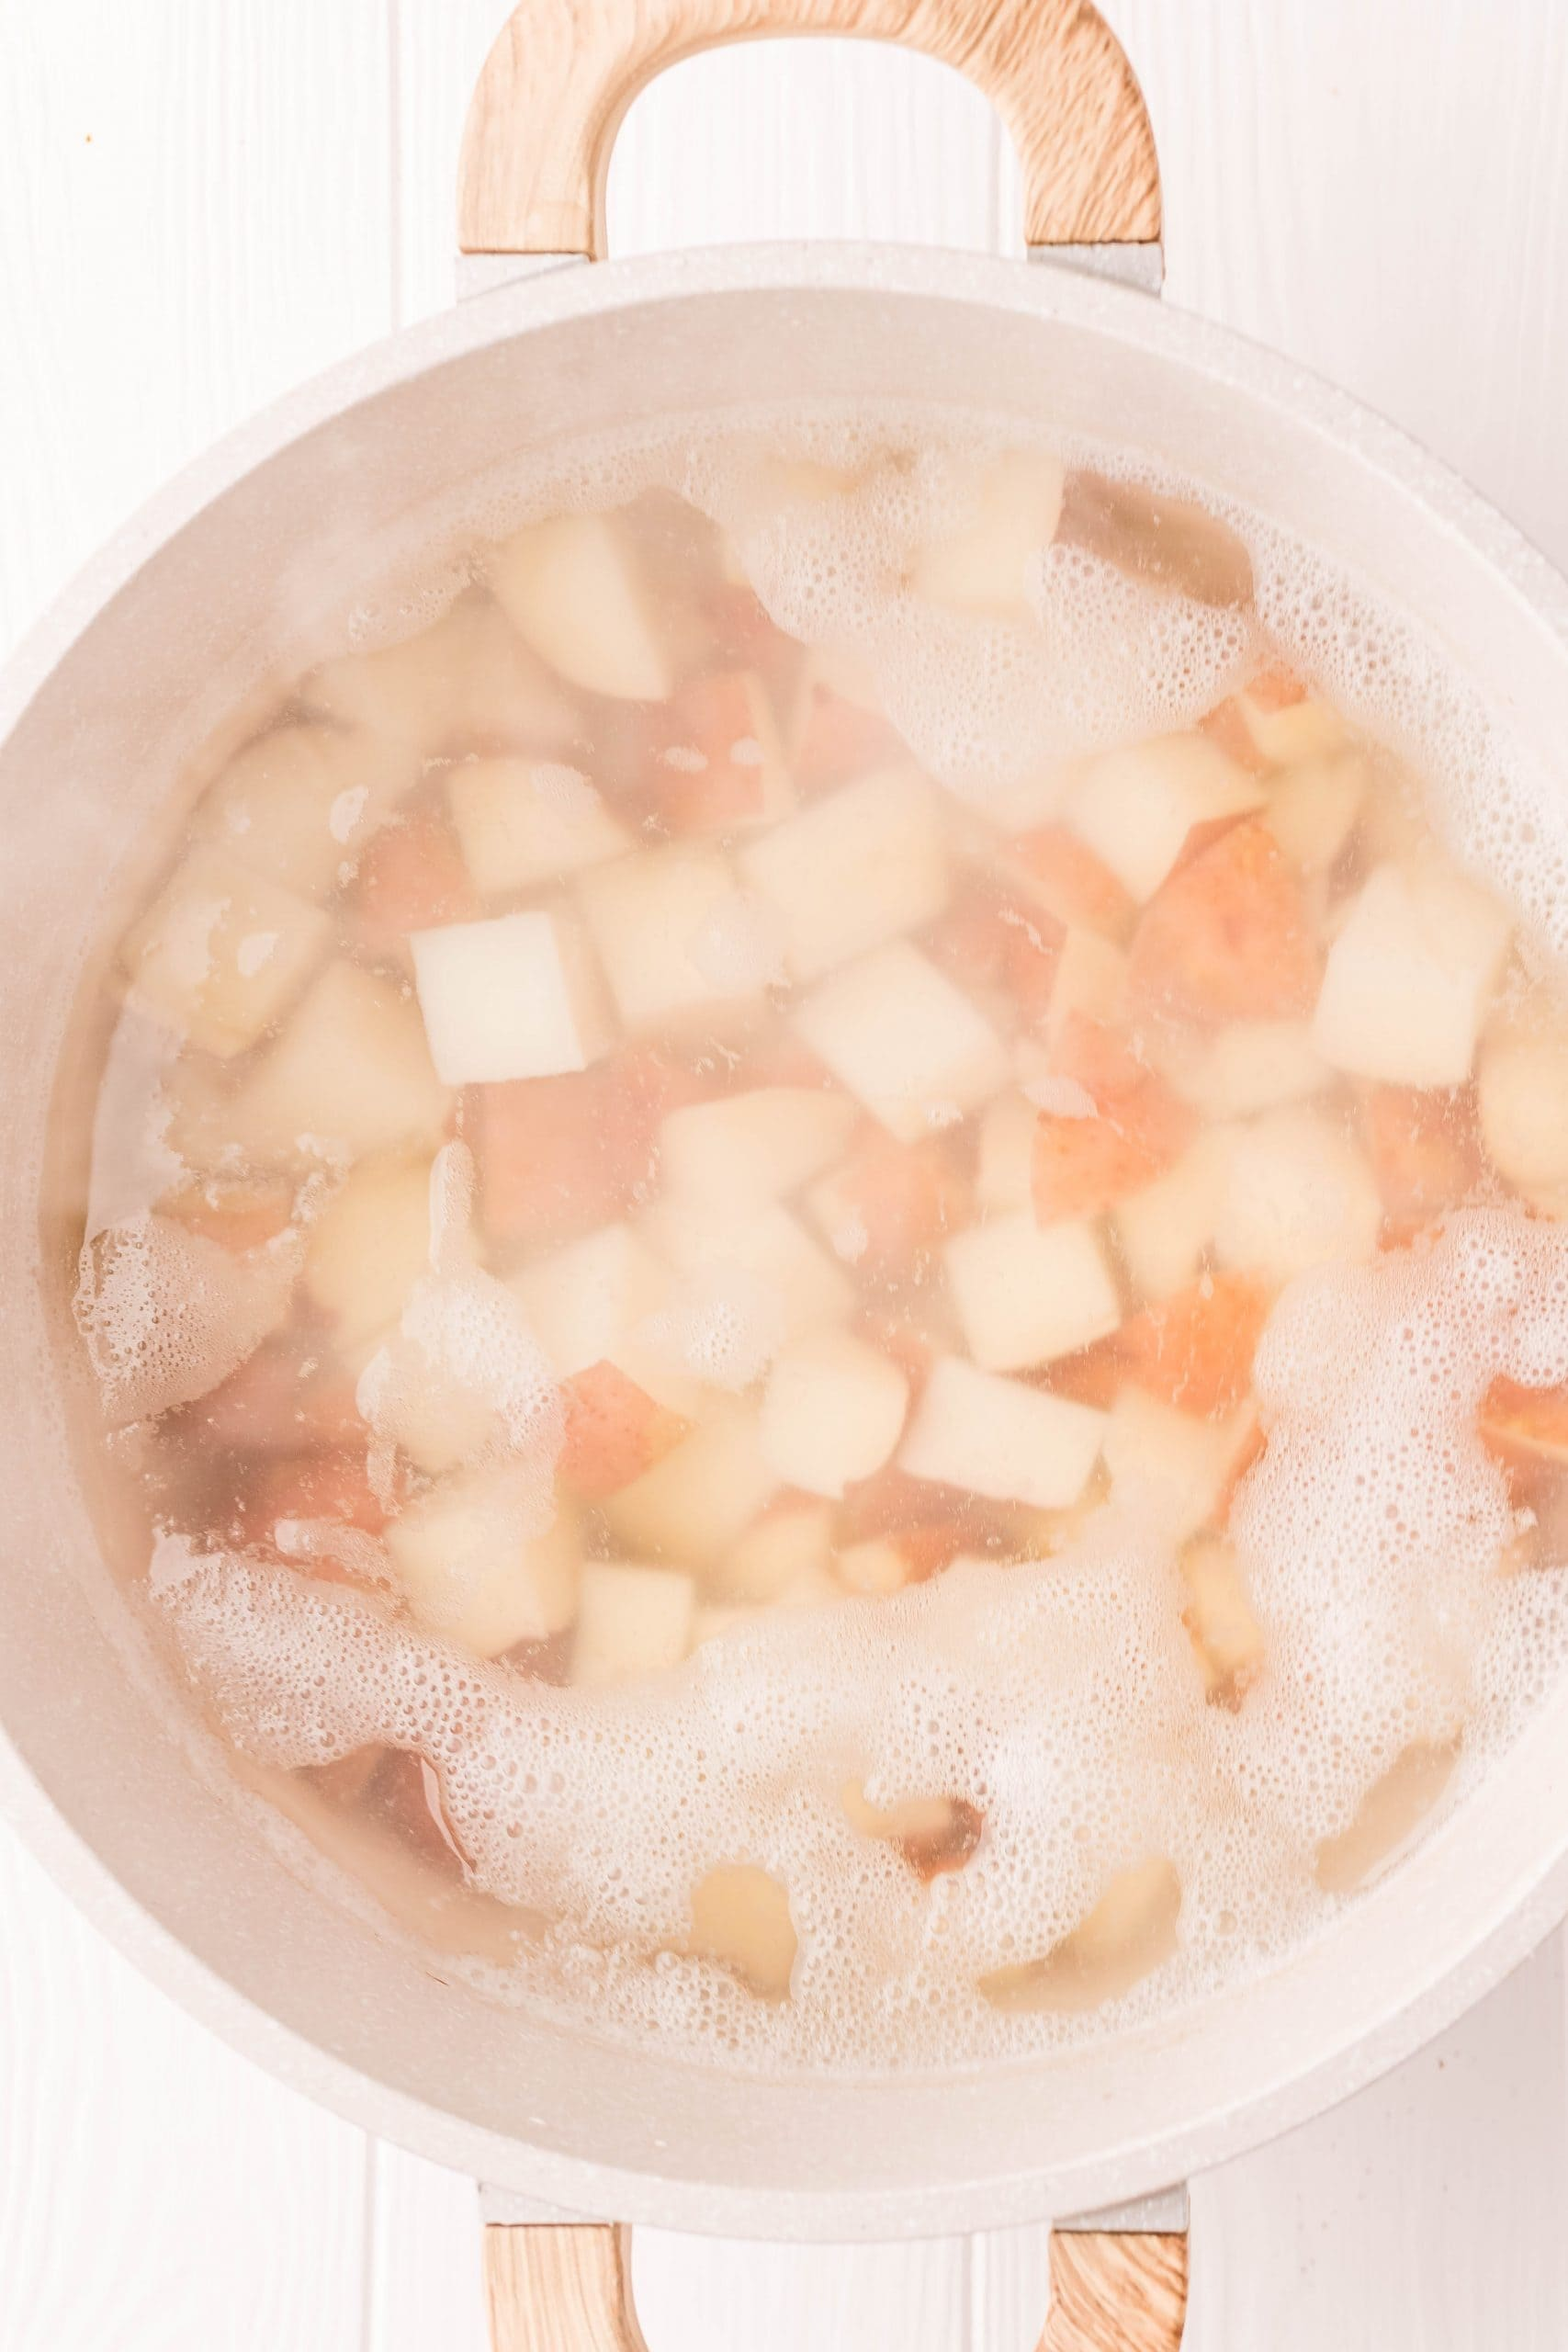 picture of potatoes boiling in water